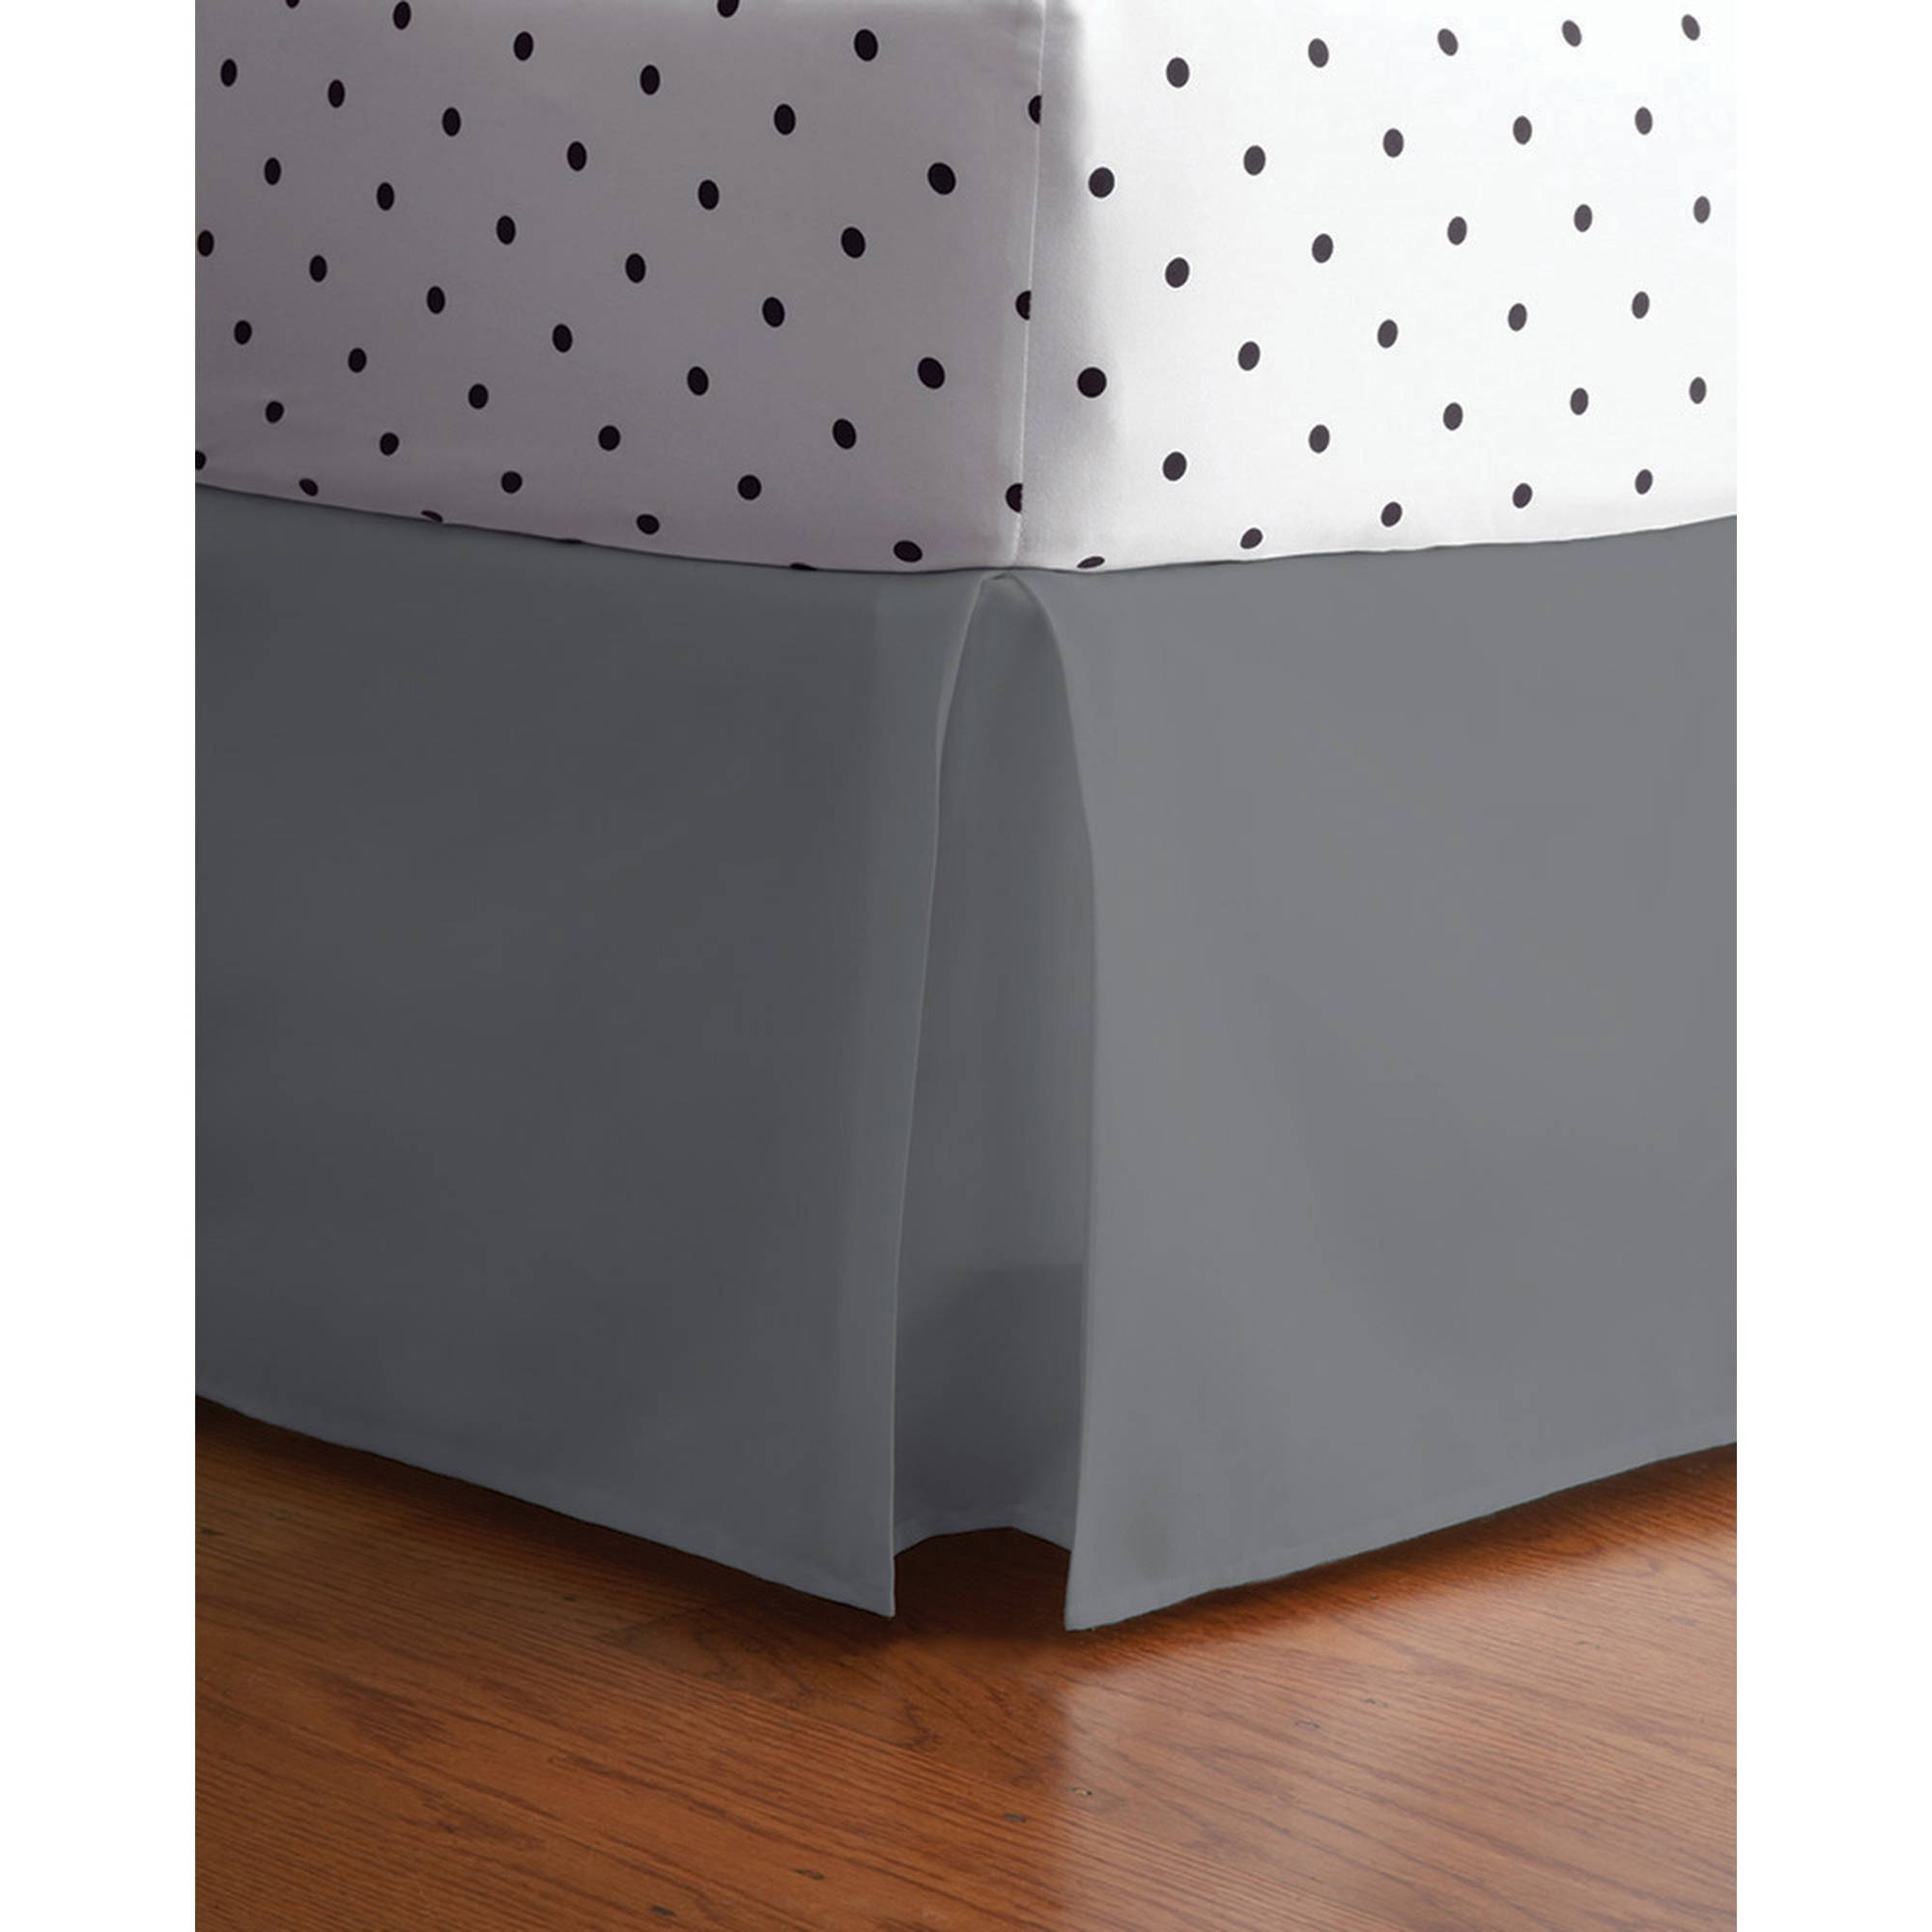 Mainstays Kids Microfiber Solid Bed Skirt, Full